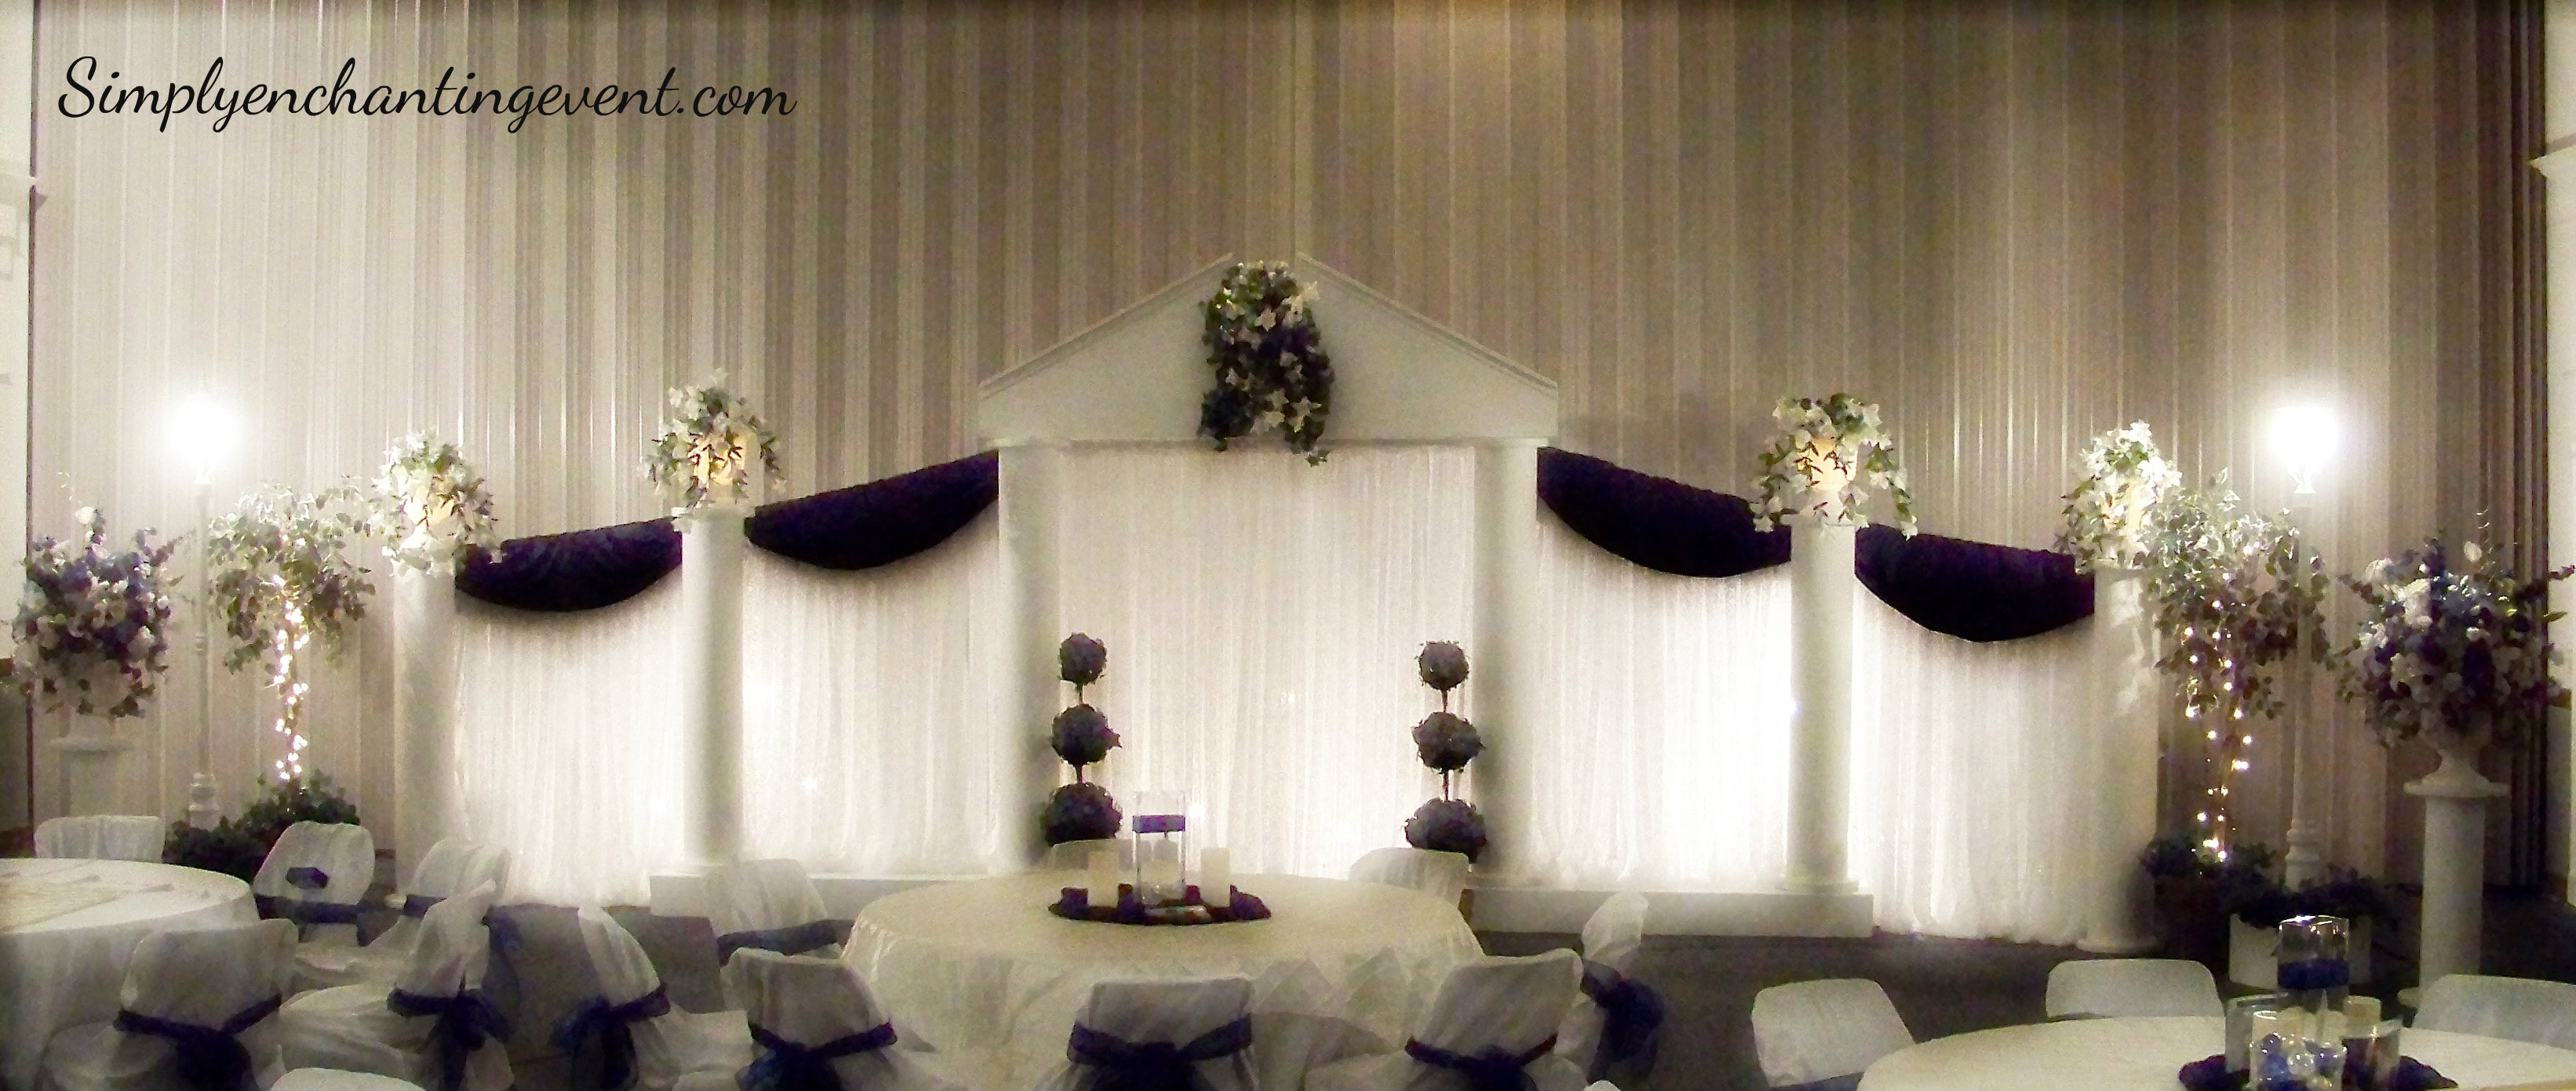 Wedding backdrops for Backdrops wedding decoration